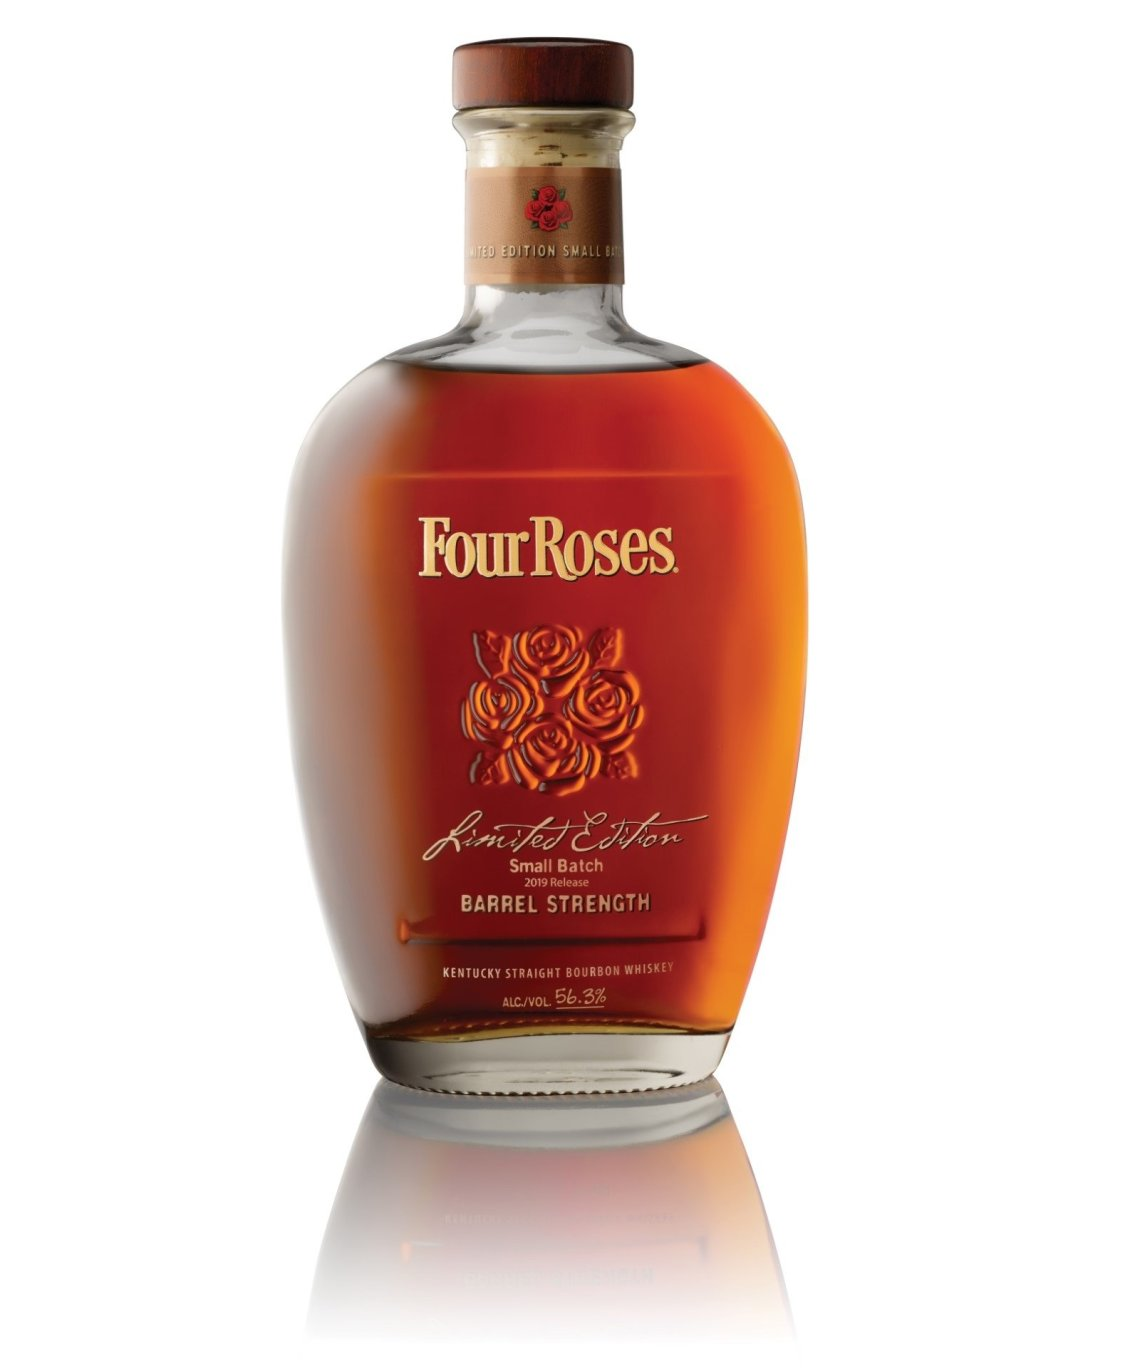 Four Roses Limited Edition Small Batch Bourbon 2019 Edition